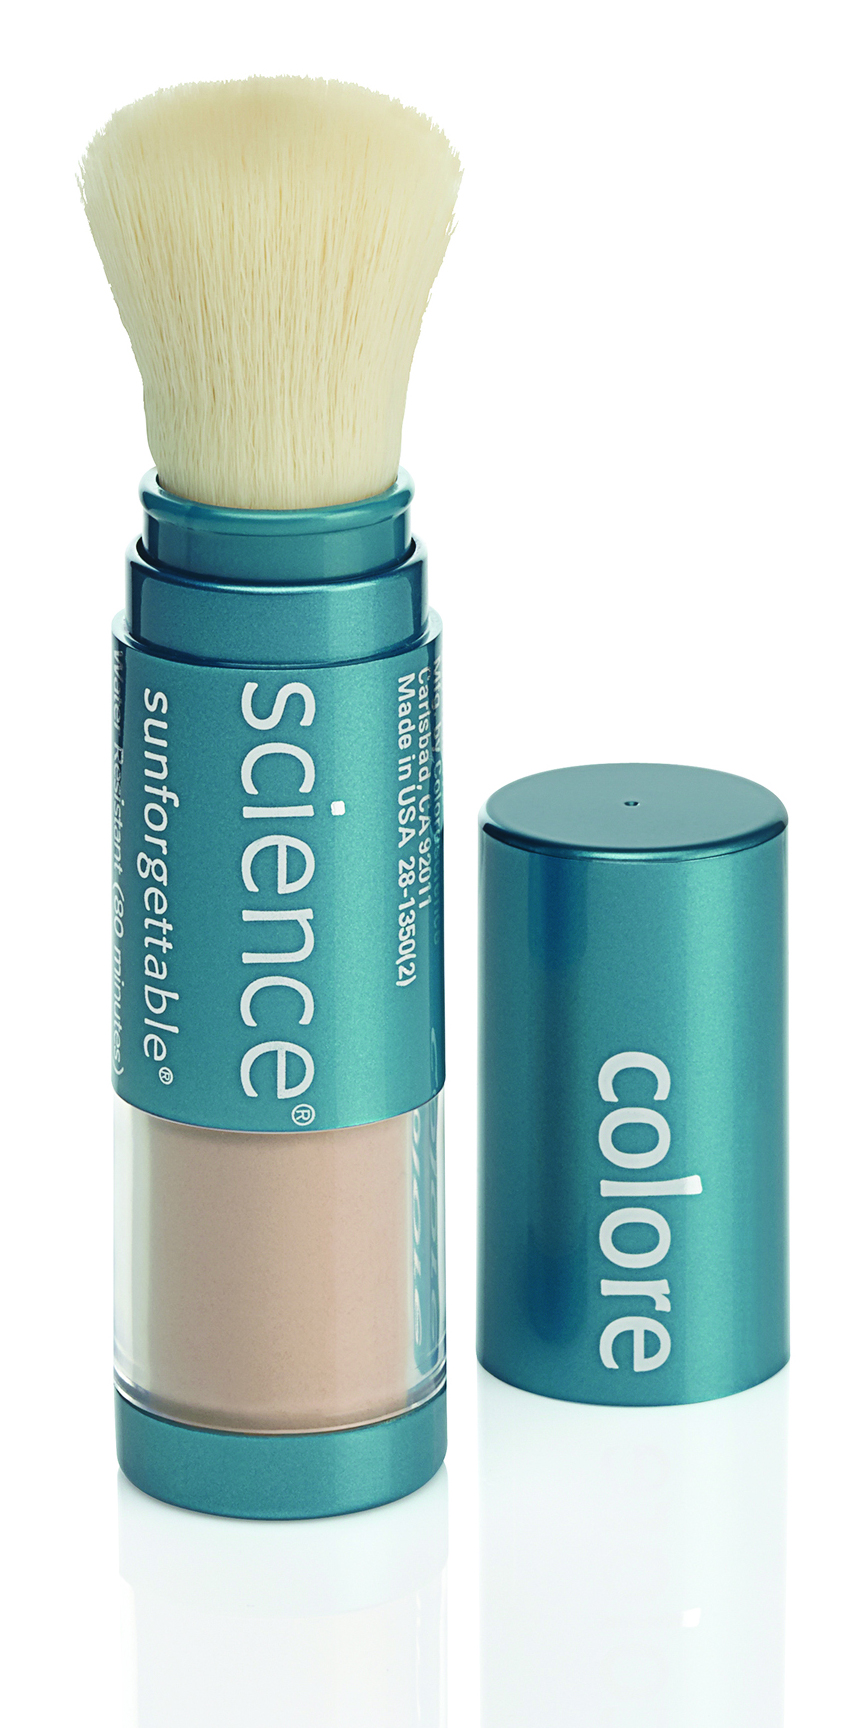 Colorscience Sunforgettable Zinc Powder SPF 50